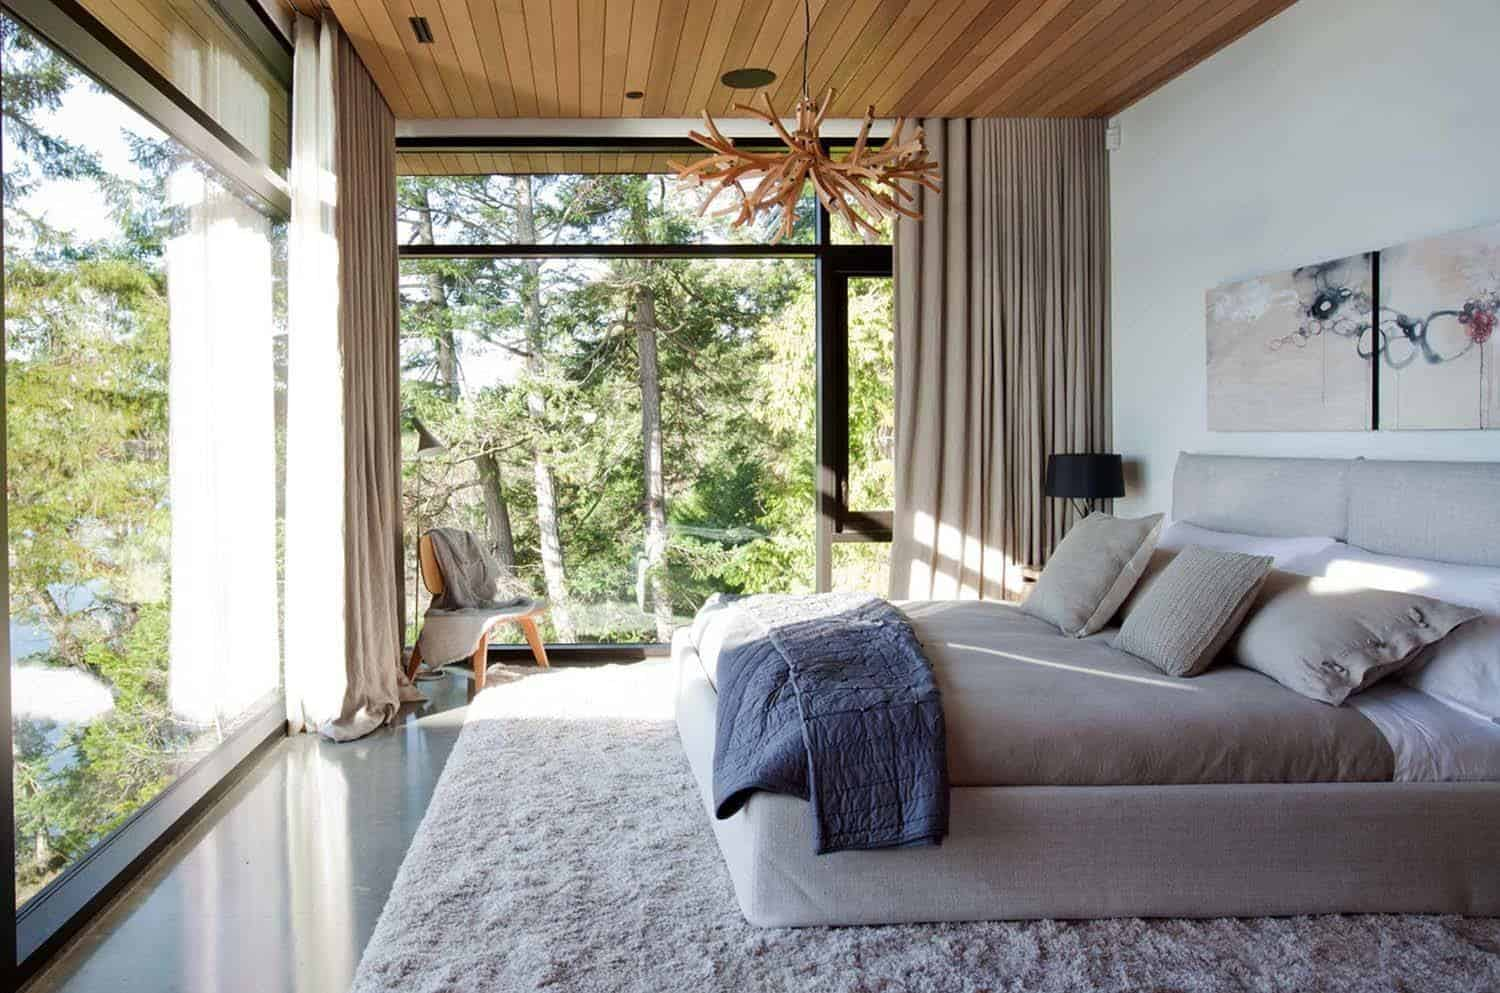 Contemporary Holiday Home-Marrimor Studio-17-1 Kindesign